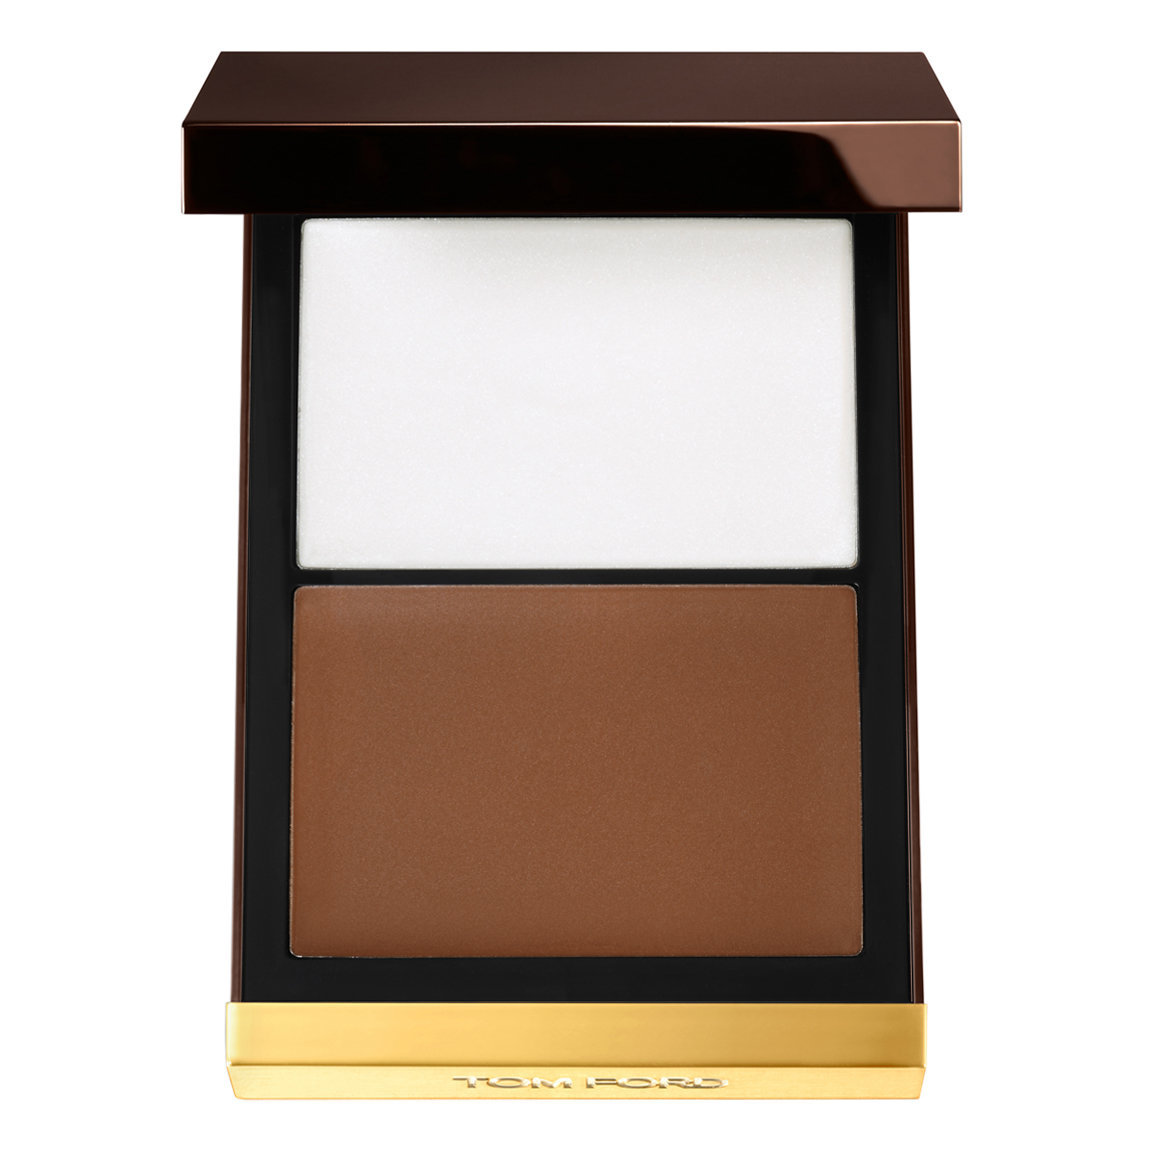 TOM FORD Shade and Illuminate Intensity 02 alternative view 1 - product swatch.